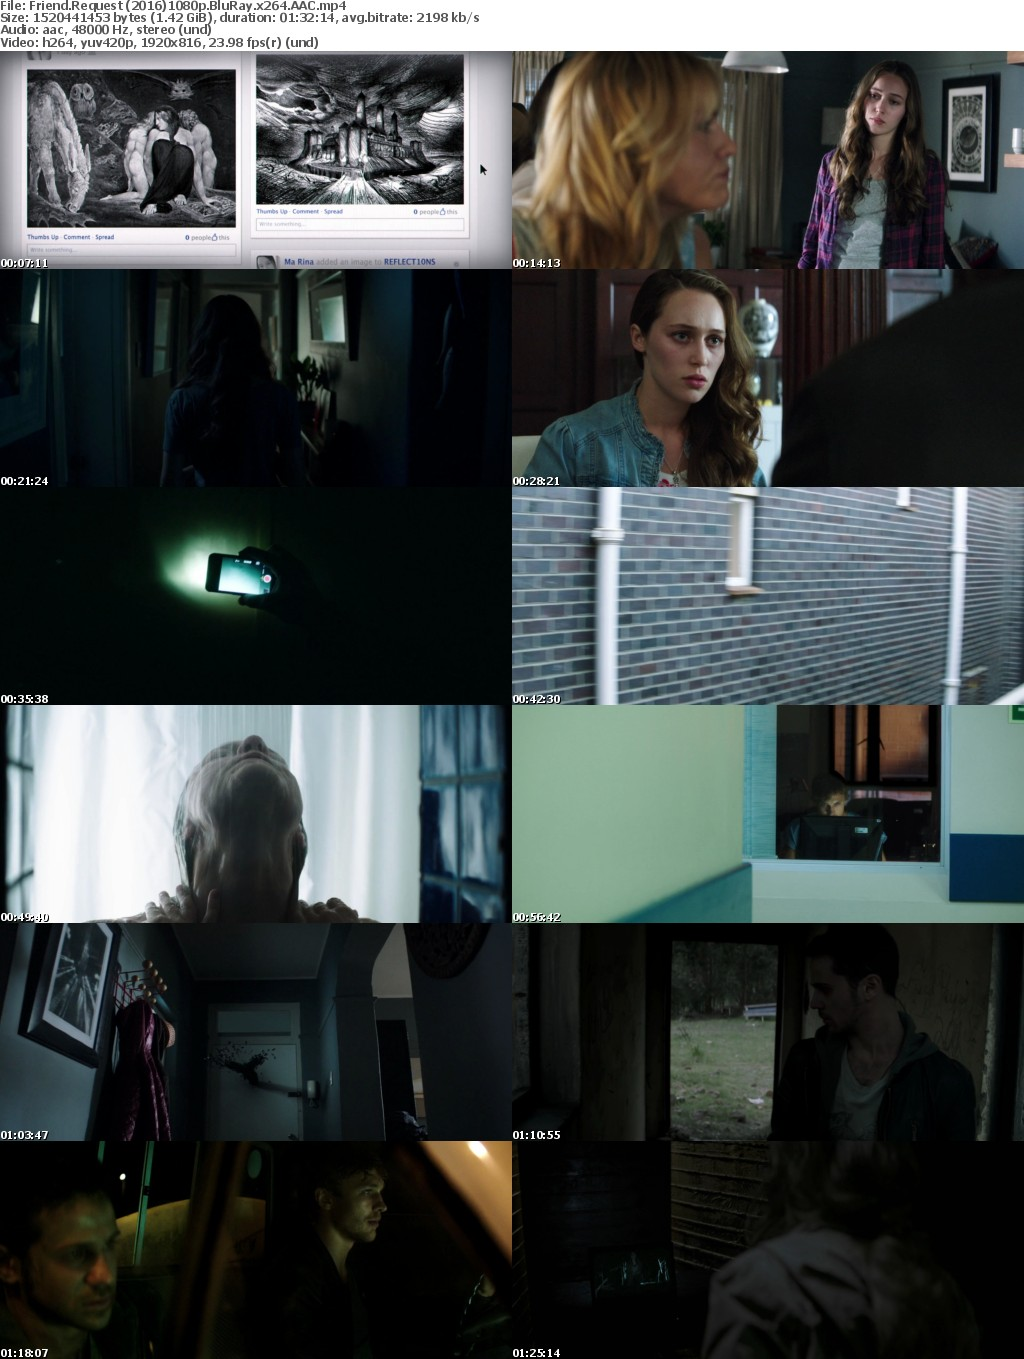 Friend (2016)1080p BluRay x264 AAC